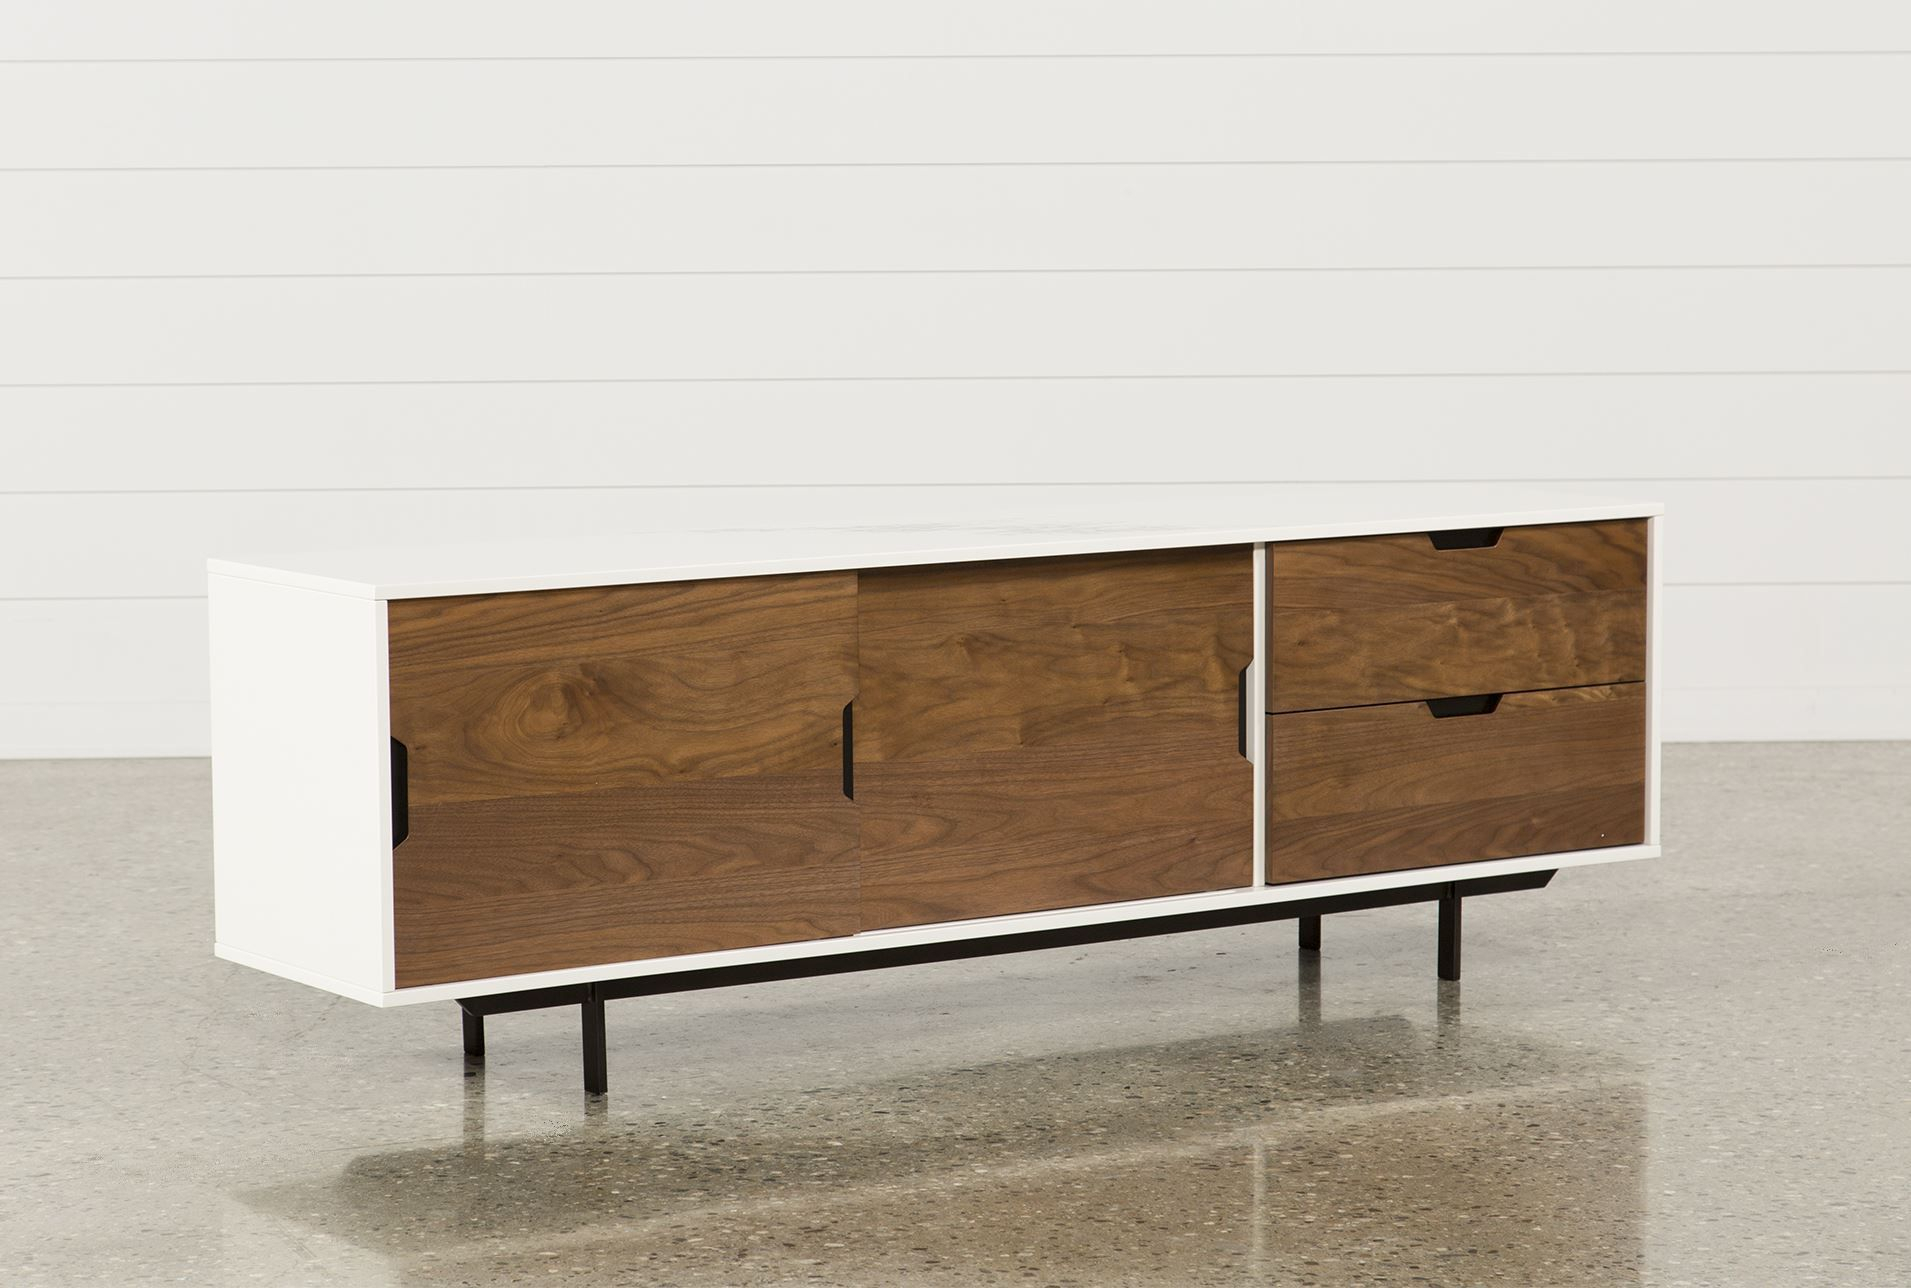 Bale 82 Inch Tv Stand   Fab Furniture   Living Spaces, Furniture, Space with regard to Sinclair White 64 Inch Tv Stands (Image 3 of 30)